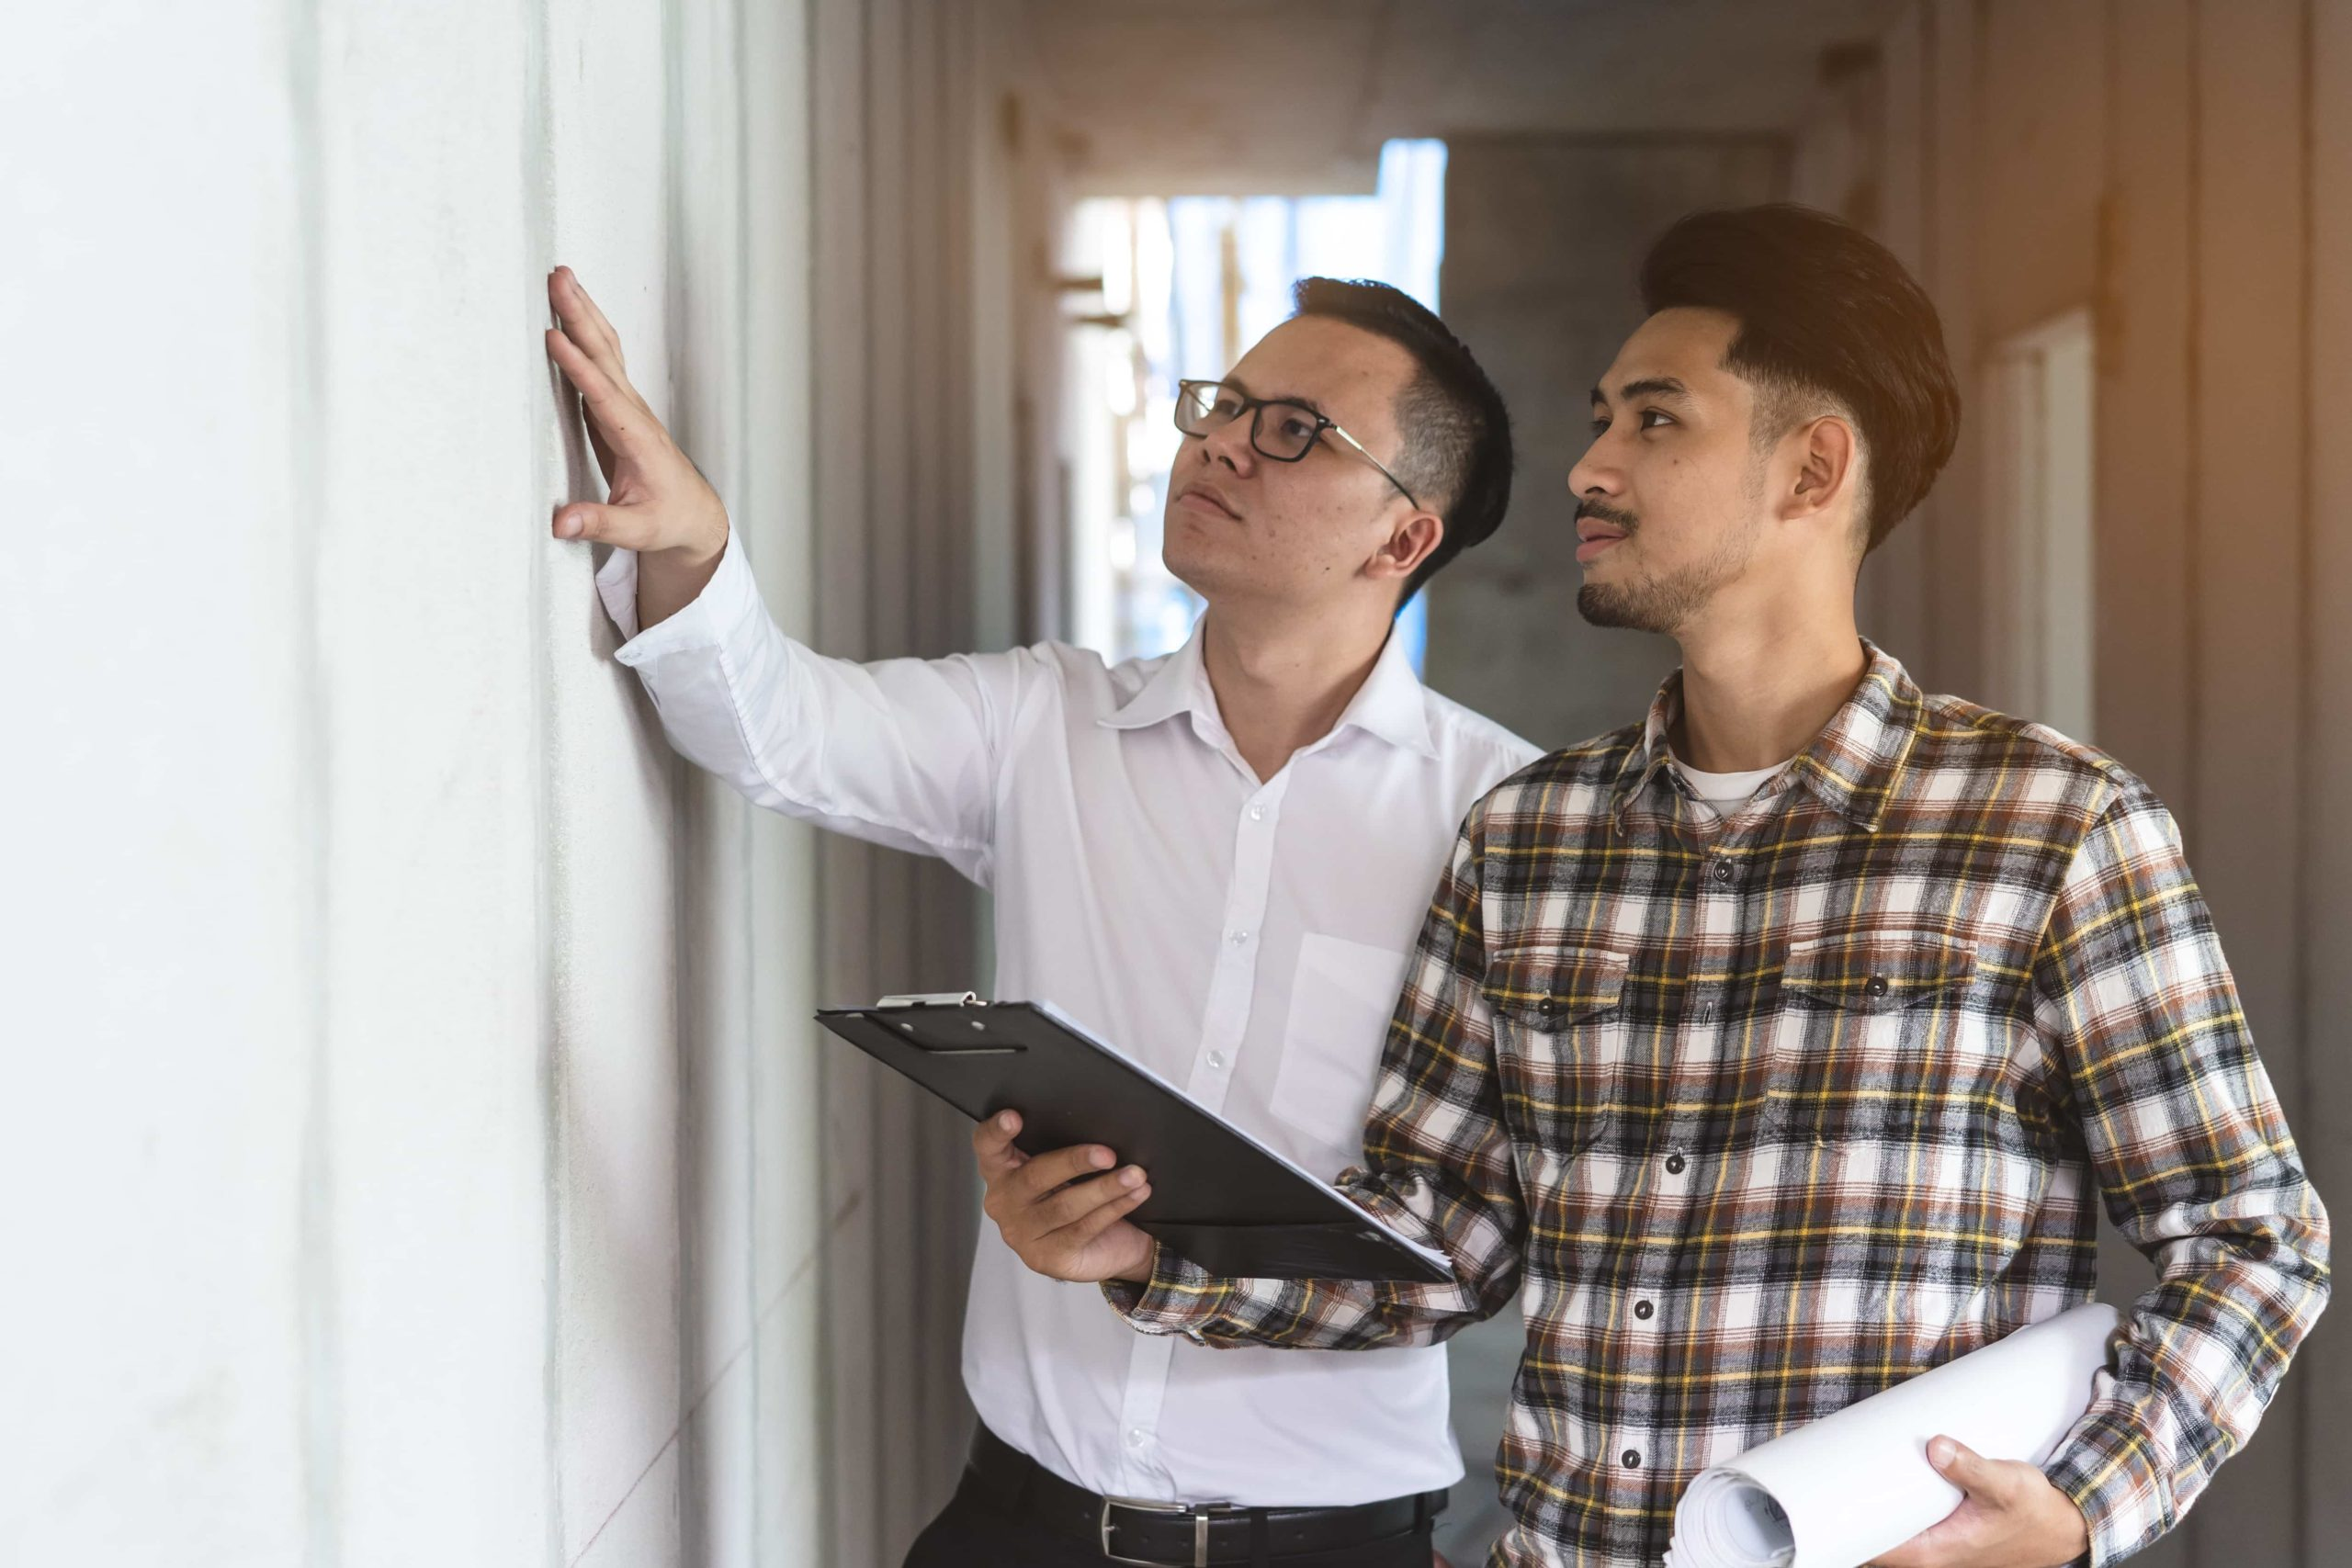 Builder inspection consultancy. Two engineer consulting and checking material and structure in construction.